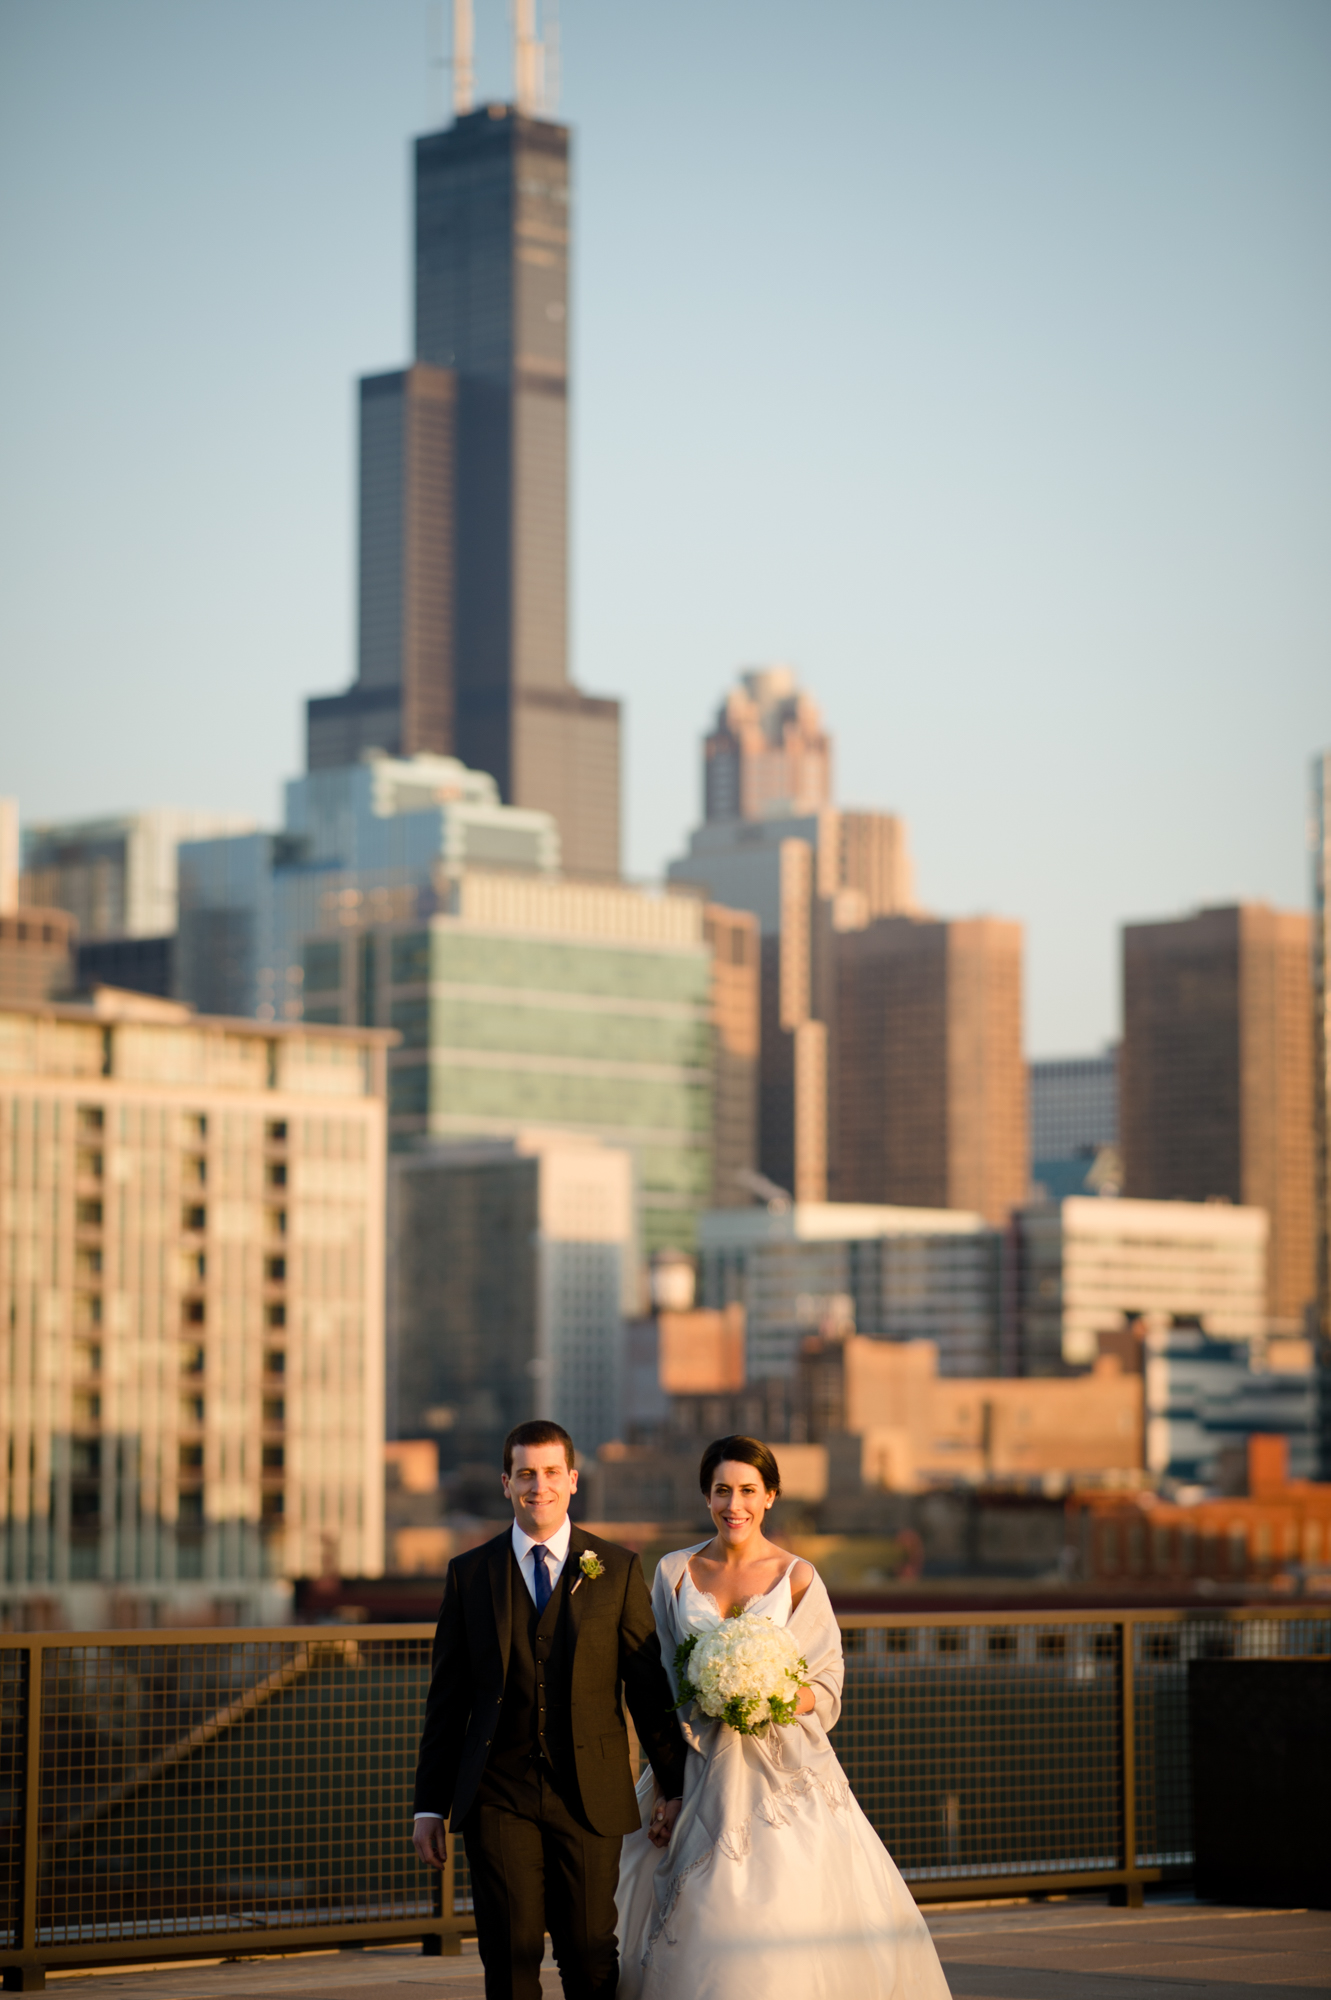 Wedding portrait against Chicago skyline